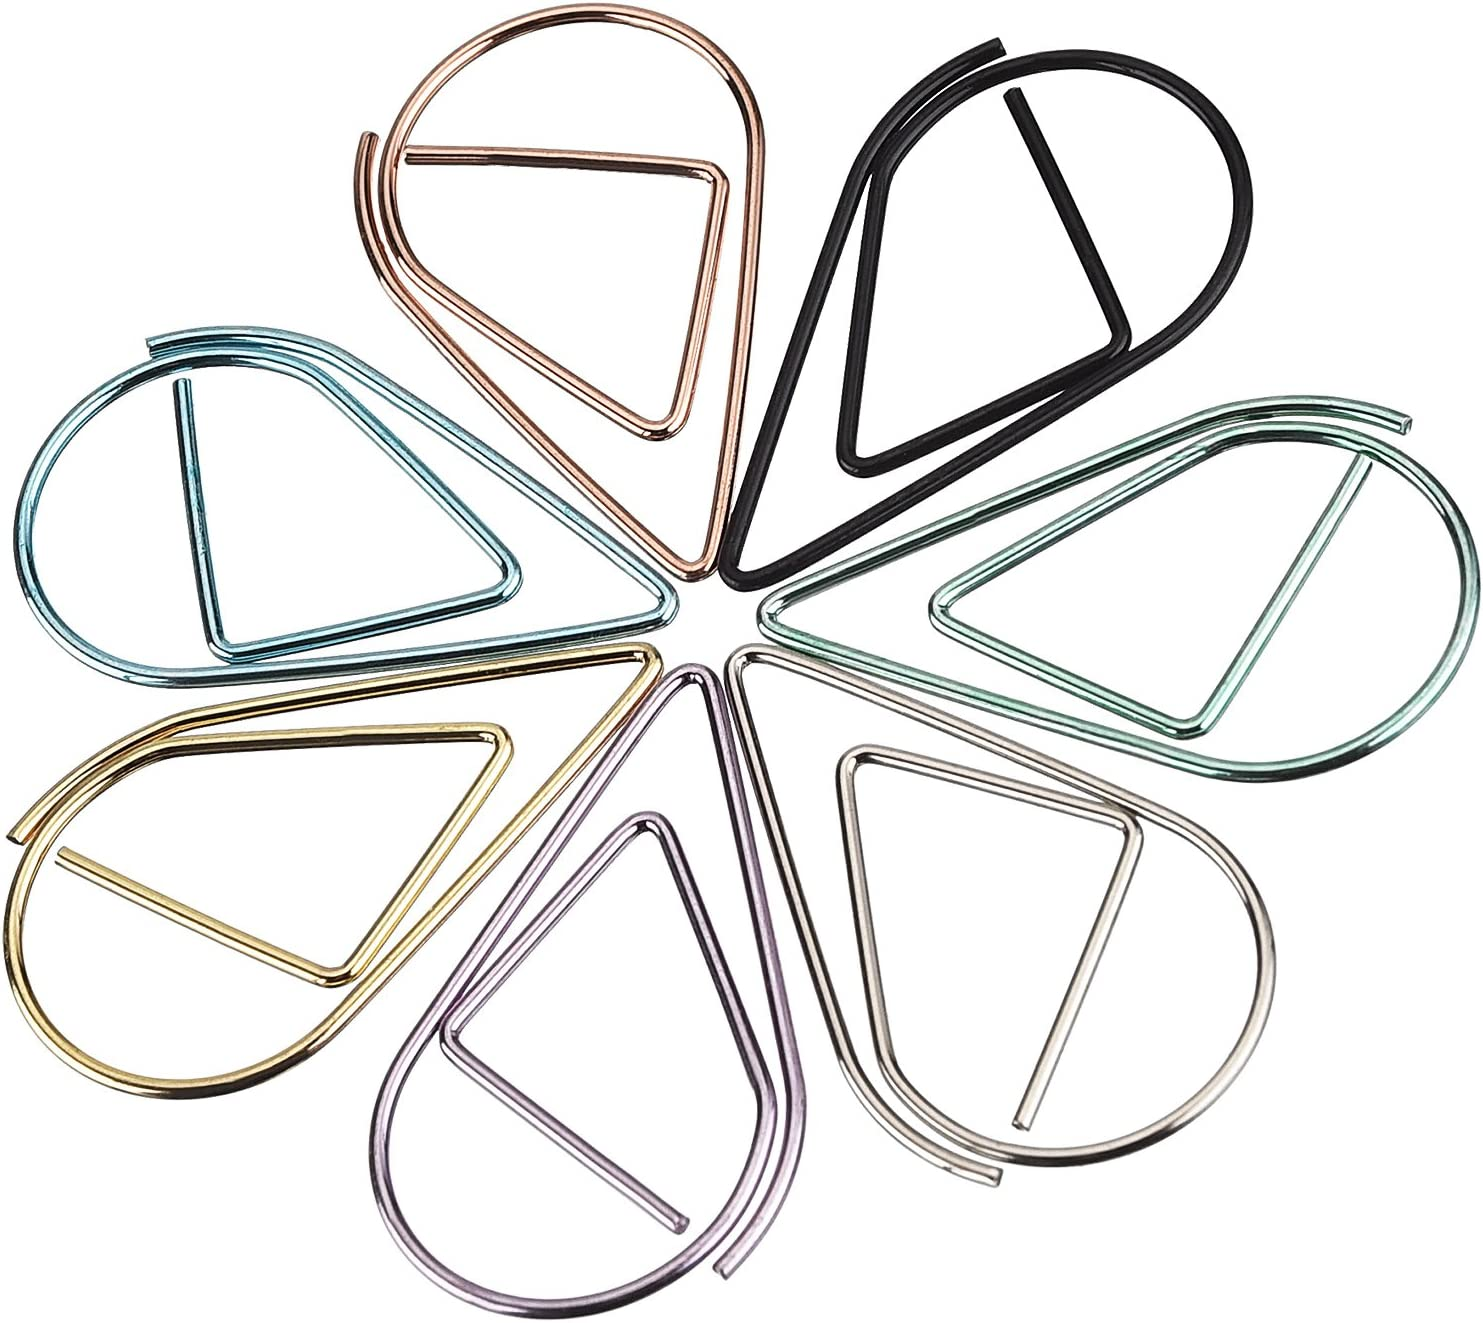 Size A Frienda 105 Pieces Multicolor Paperclips Metal Paper Clips for School Office Supplies